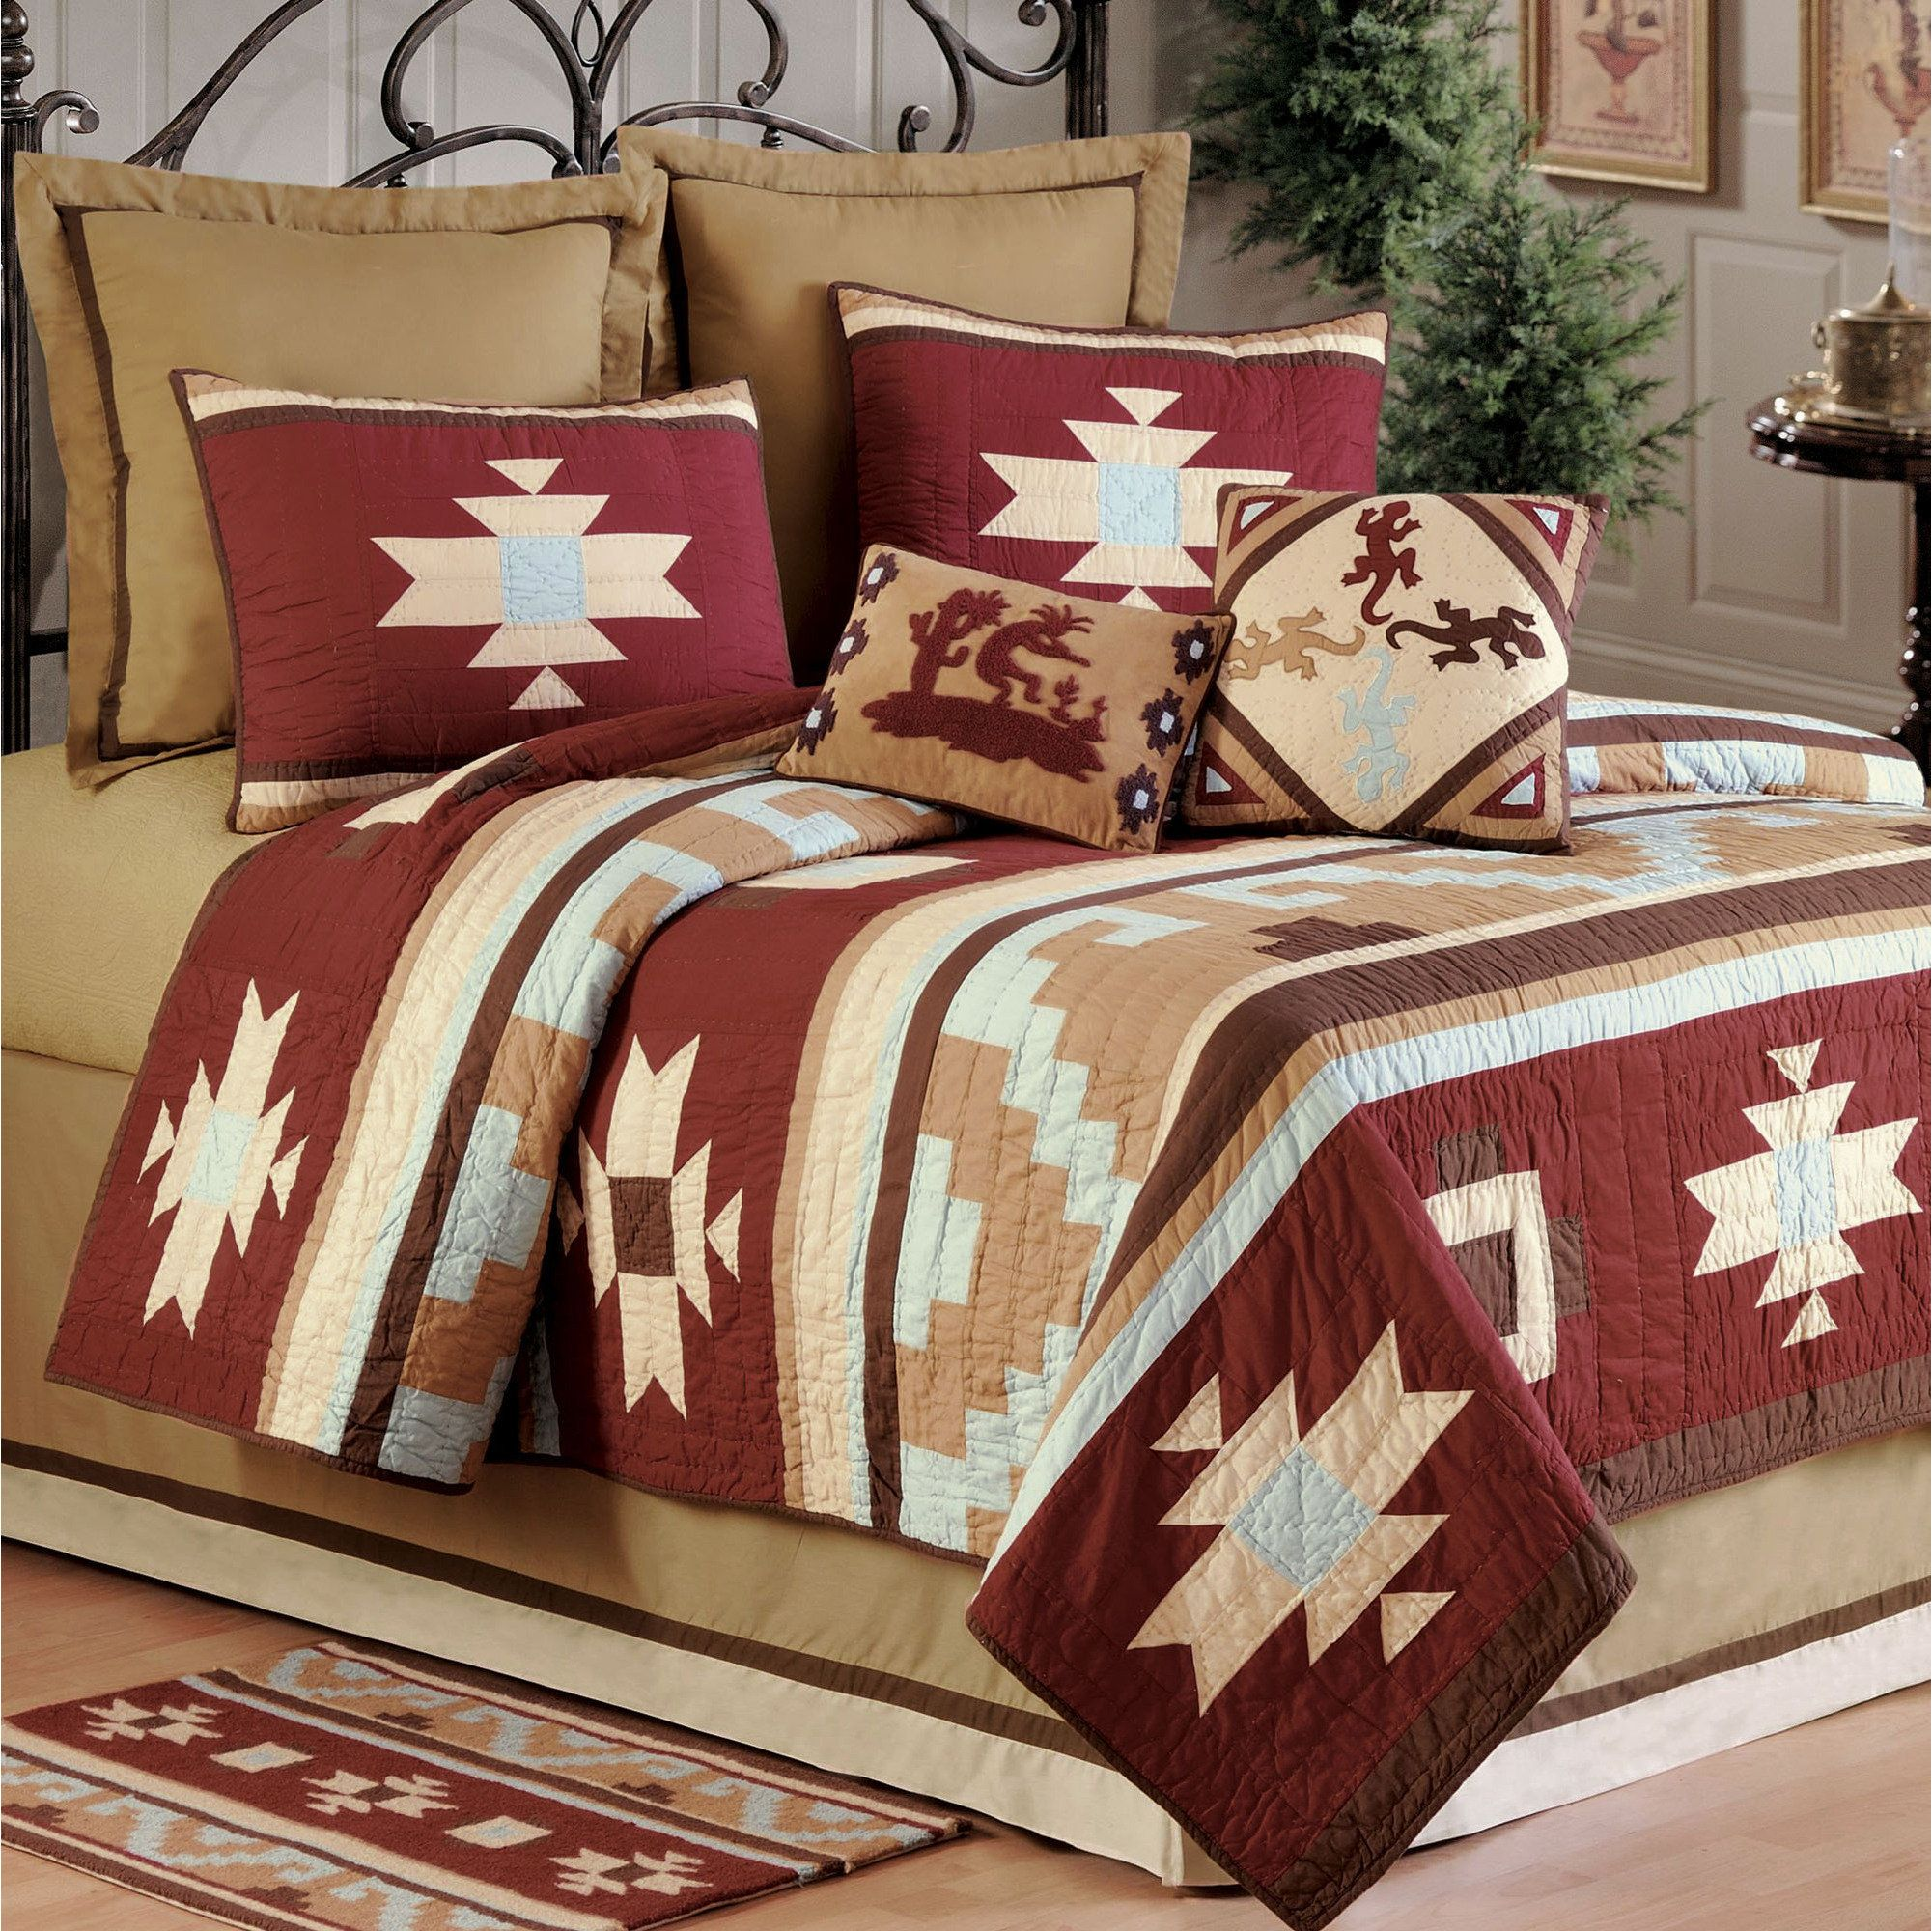 Canyon dance earth quilt rustic red quilt bedding bedspread and